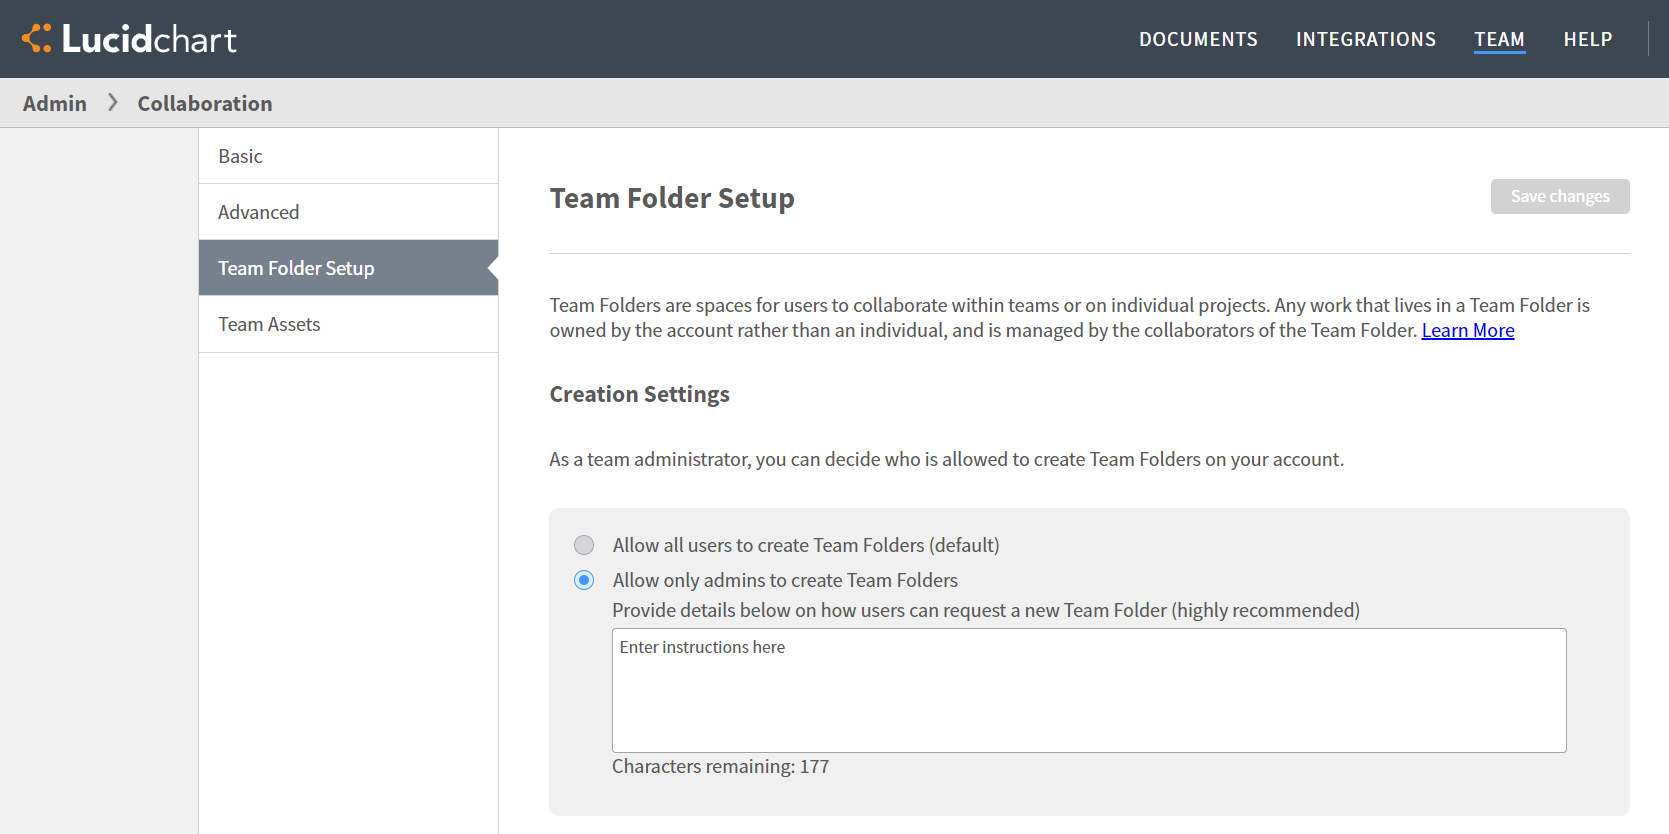 Team folder creation setup